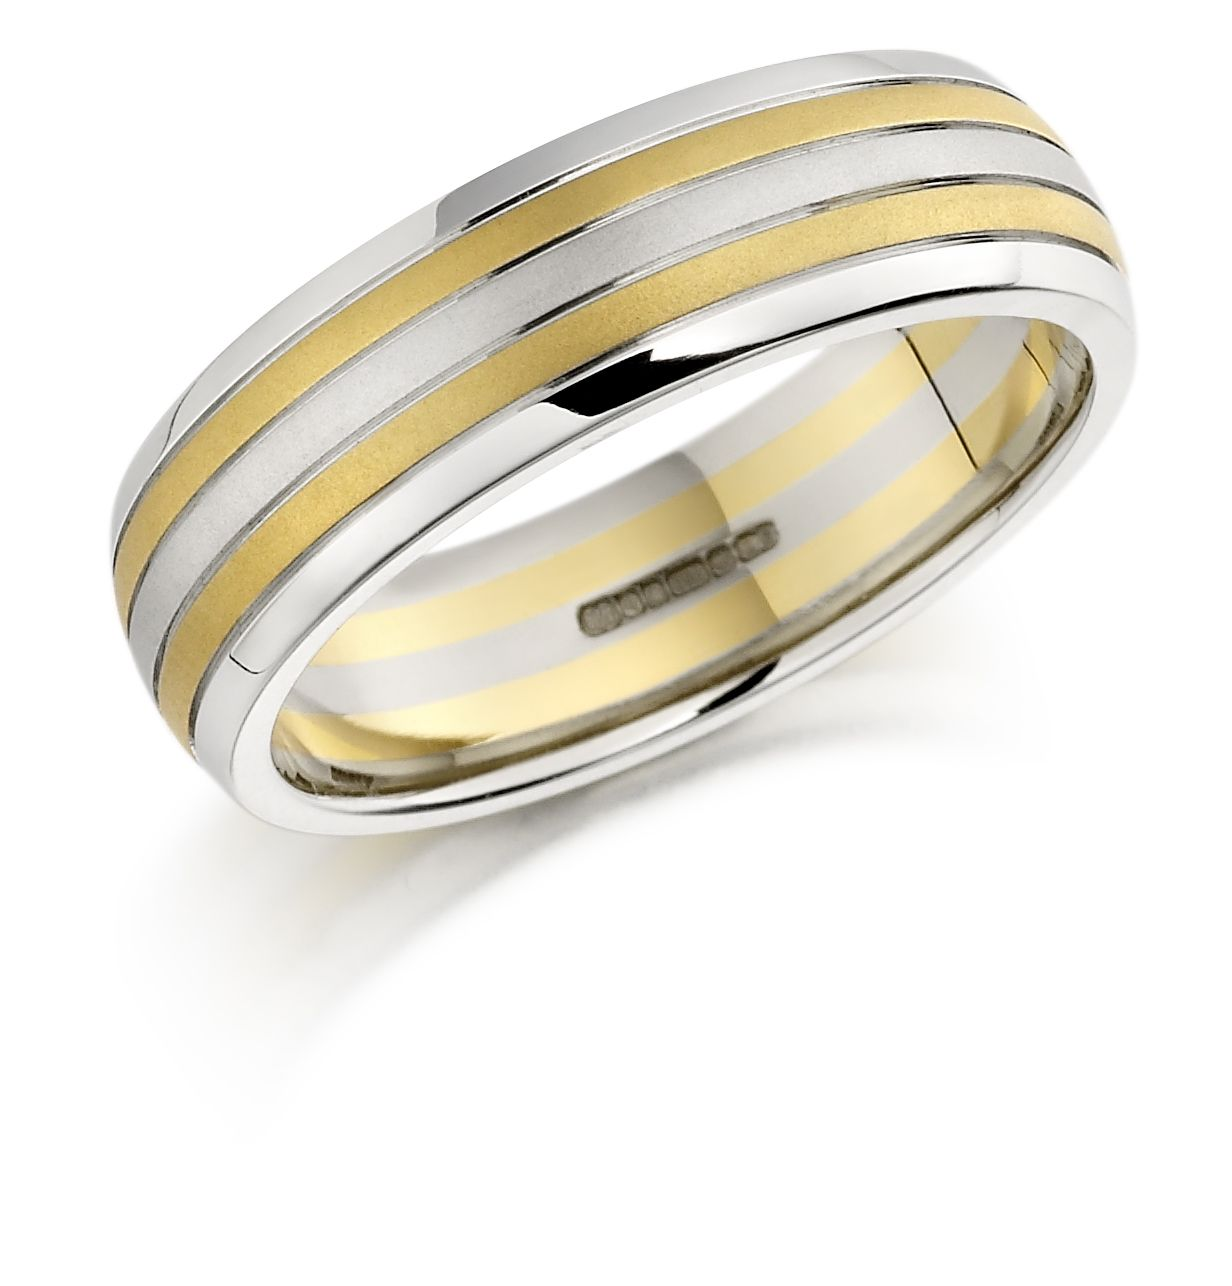 Stunning 18ct Yellow And White Gold Gents Heavy Wedding Ring Wedding Rings Rings White Gold